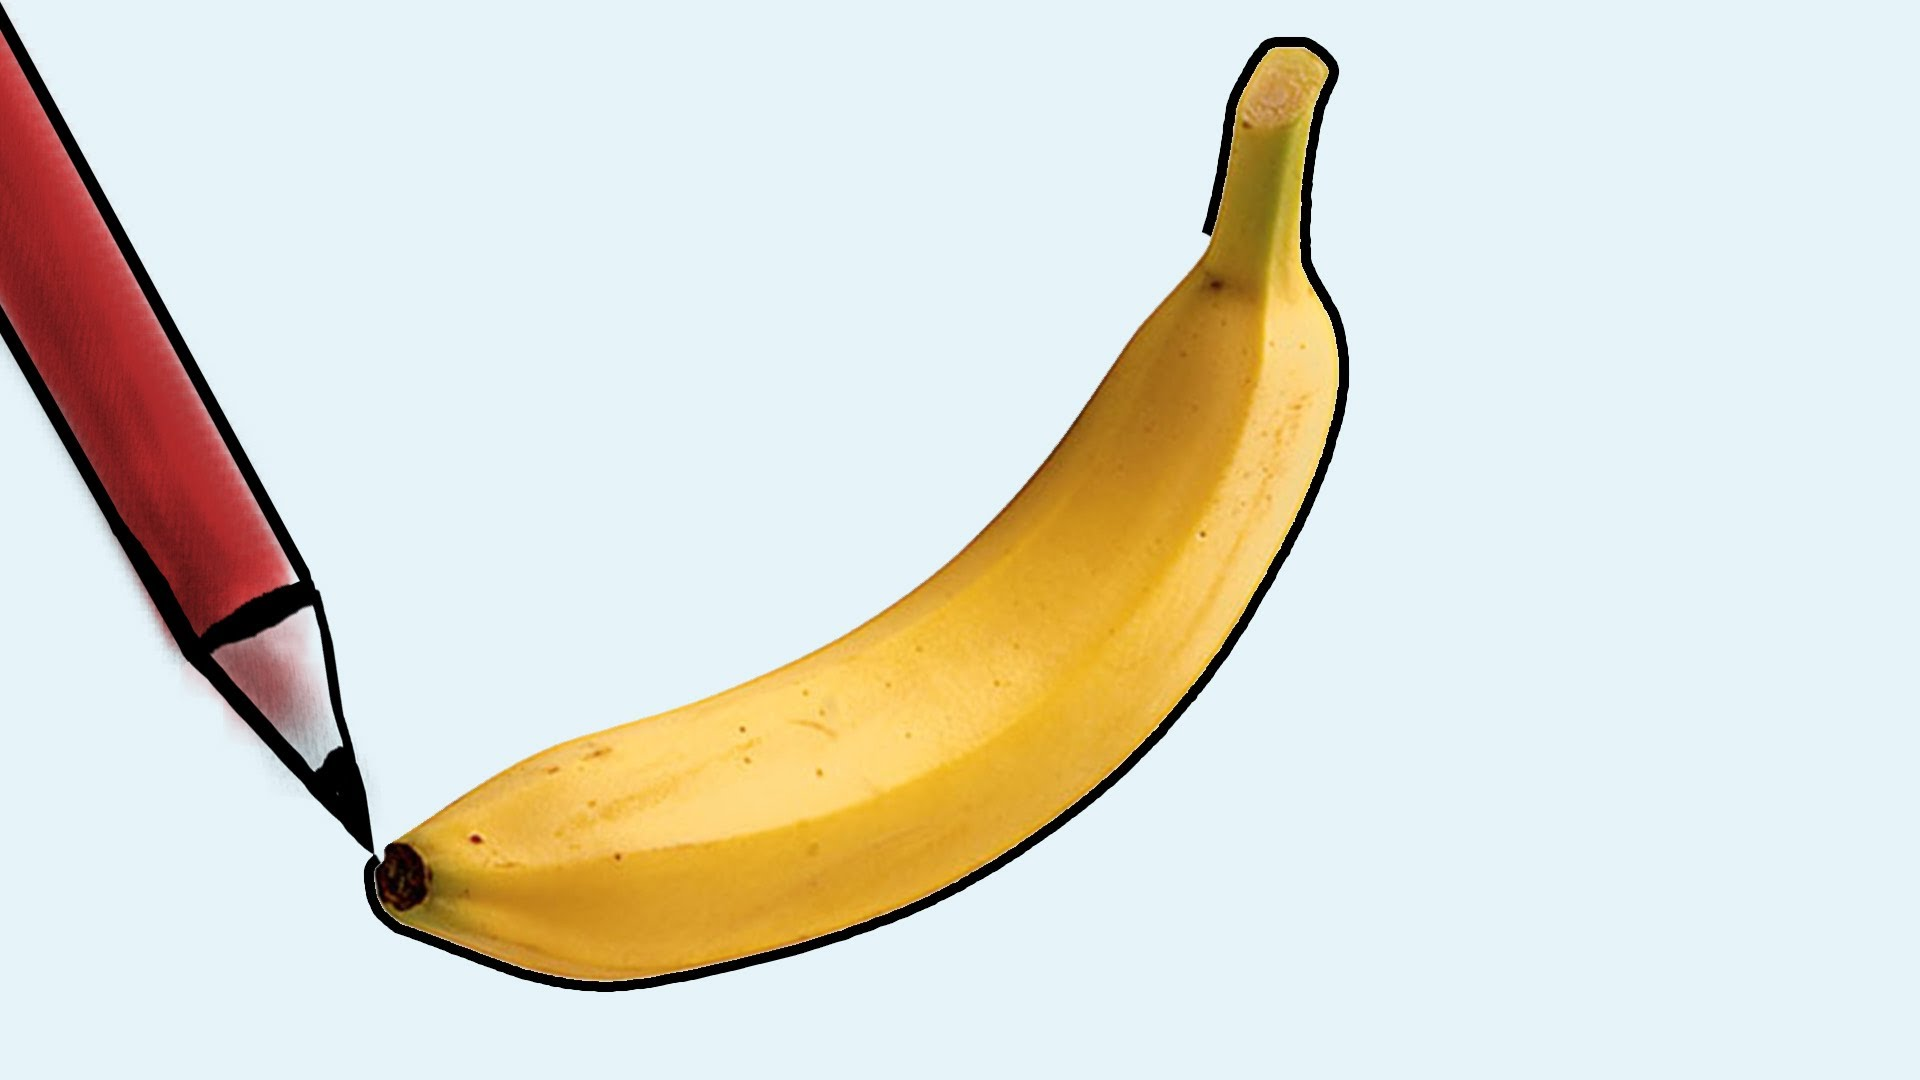 1920x1080 How To Draw A Banana